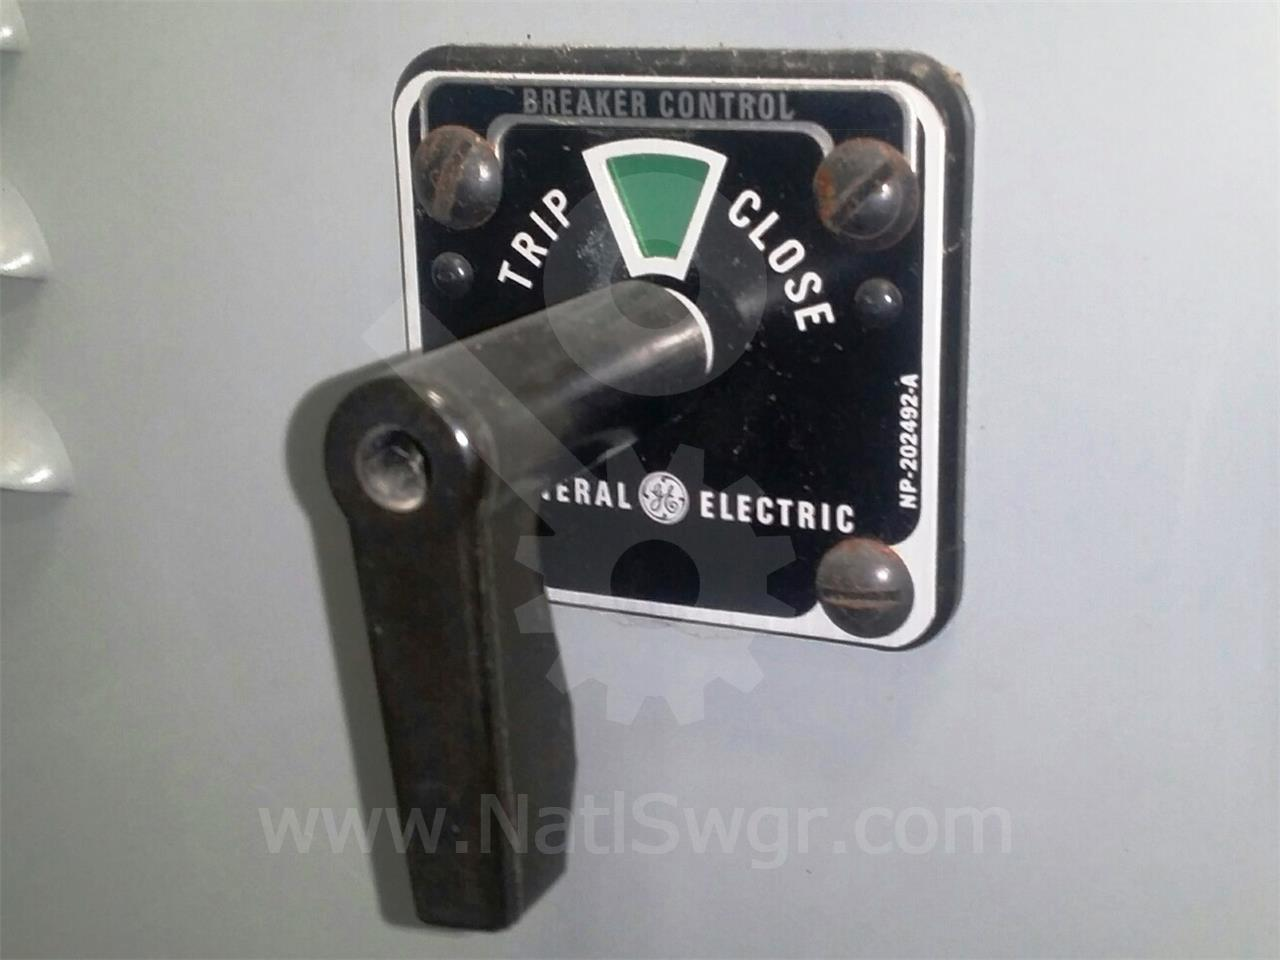 General Electric Ge Sbm Circuit Breaker Control Switch Fuse Box Pull Outs